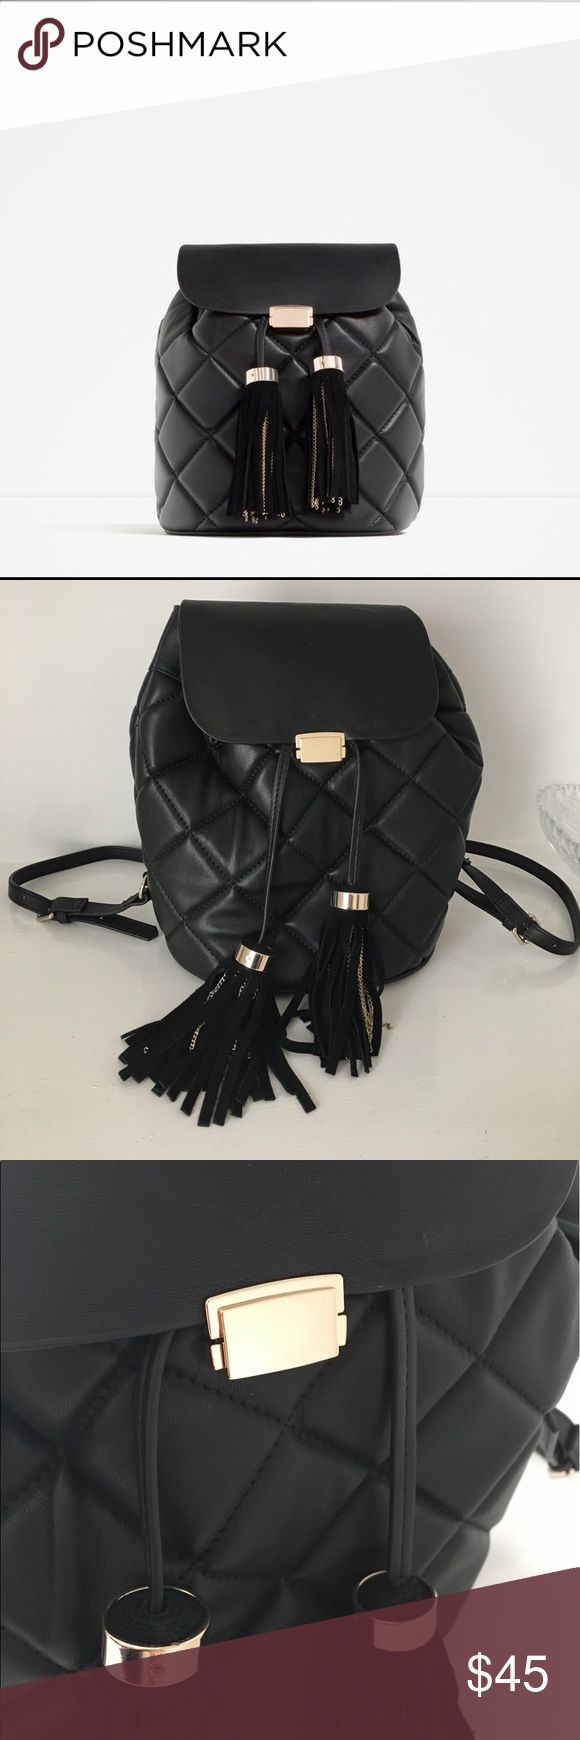 Zara Backpack with tassels Very nice backpack with two cute high quality tassels. Lightweight and roomy. Only used once! Sold out in store and online. Zara Bags Backpacks